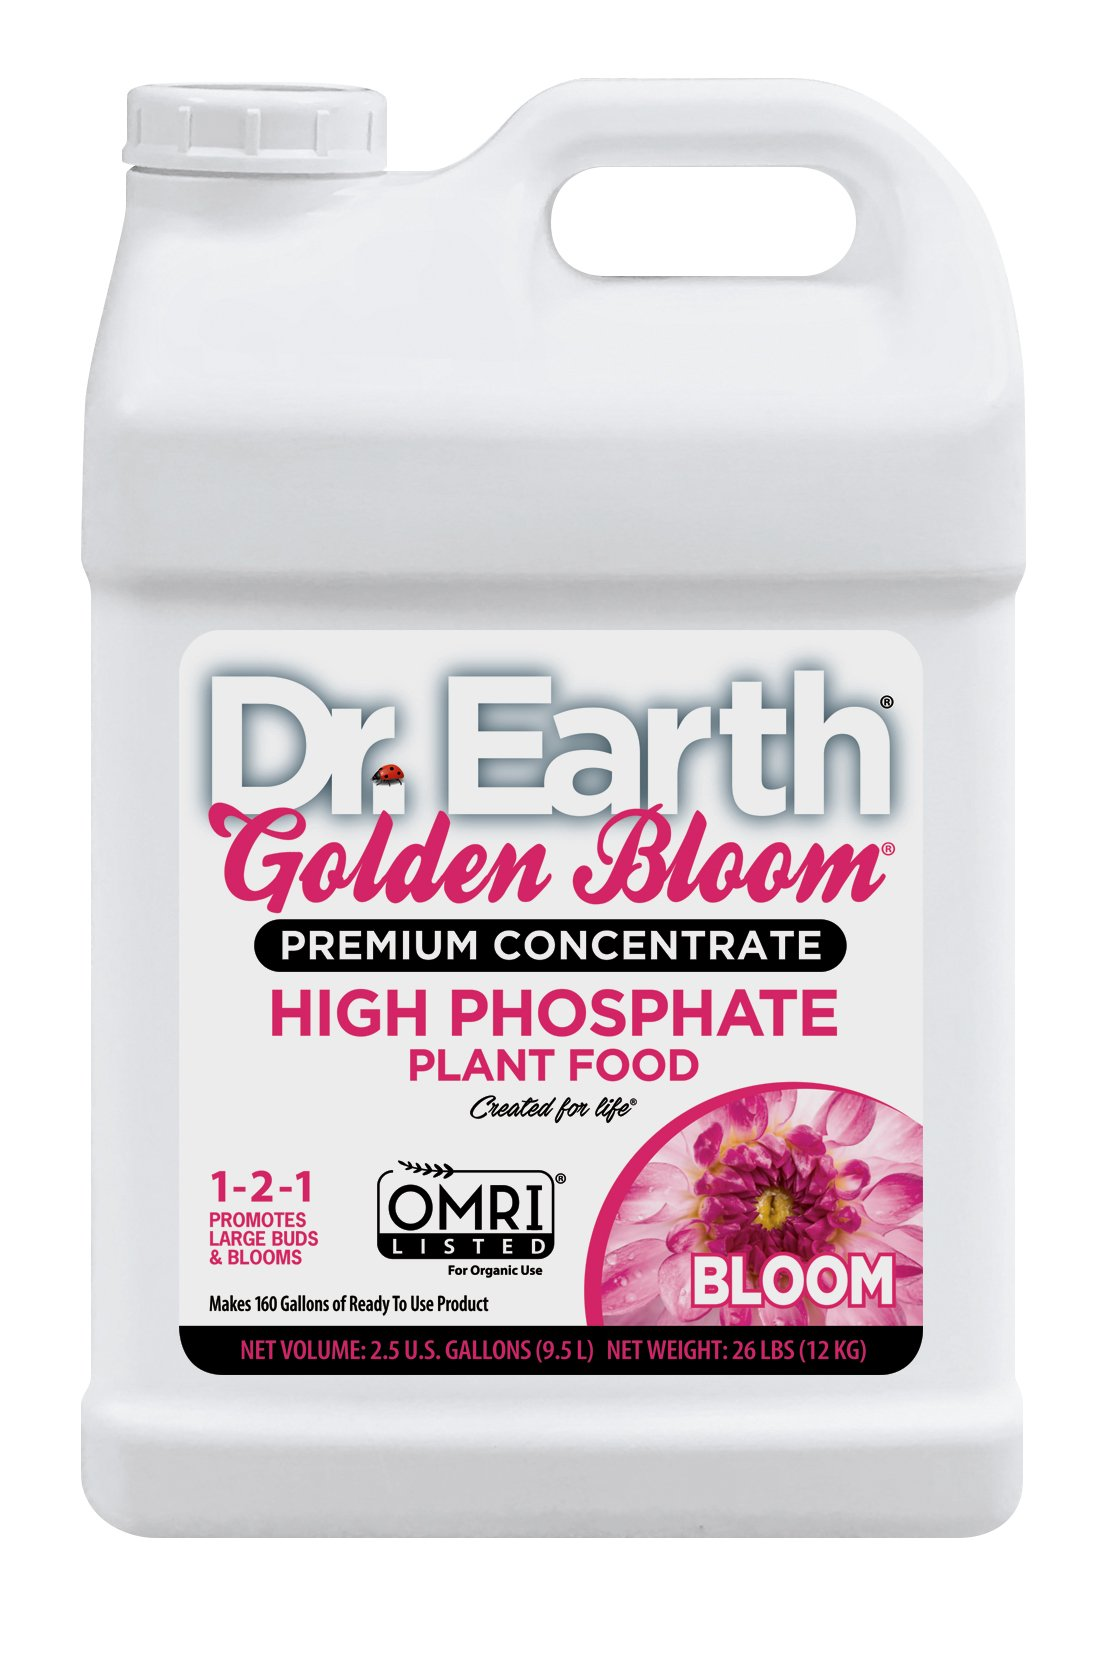 Dr. Earth Golden Bloom High Phosphate Plant Food 2.5 Gallon by Dr. Earth